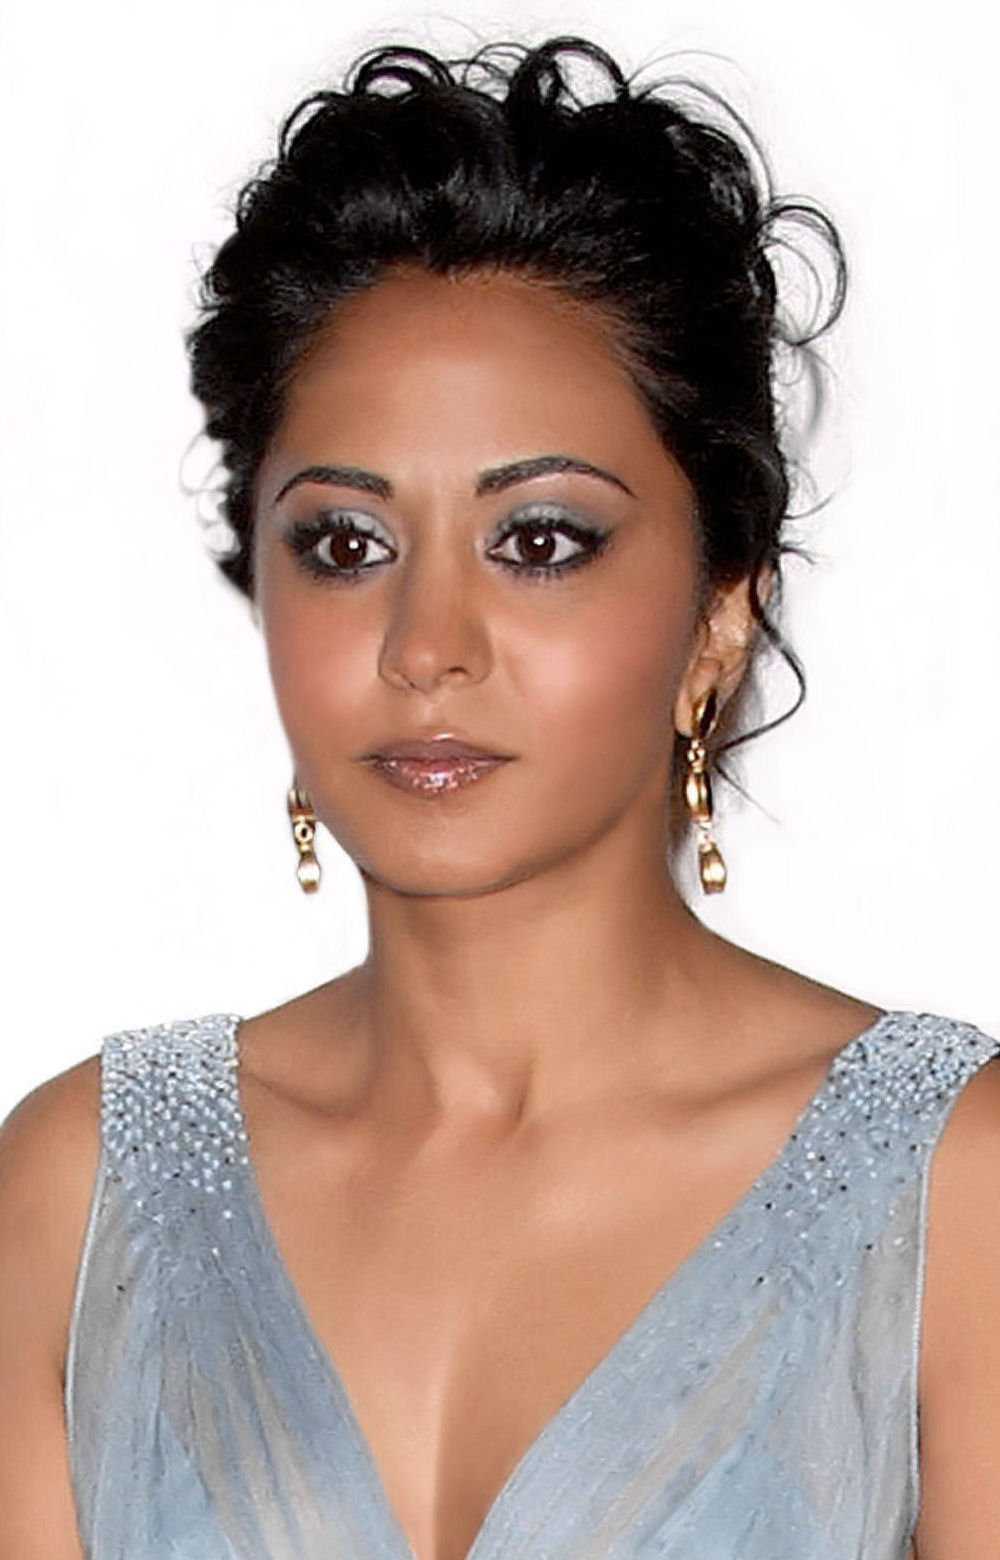 parminder nagra joins nbc s the blacklist as series regular